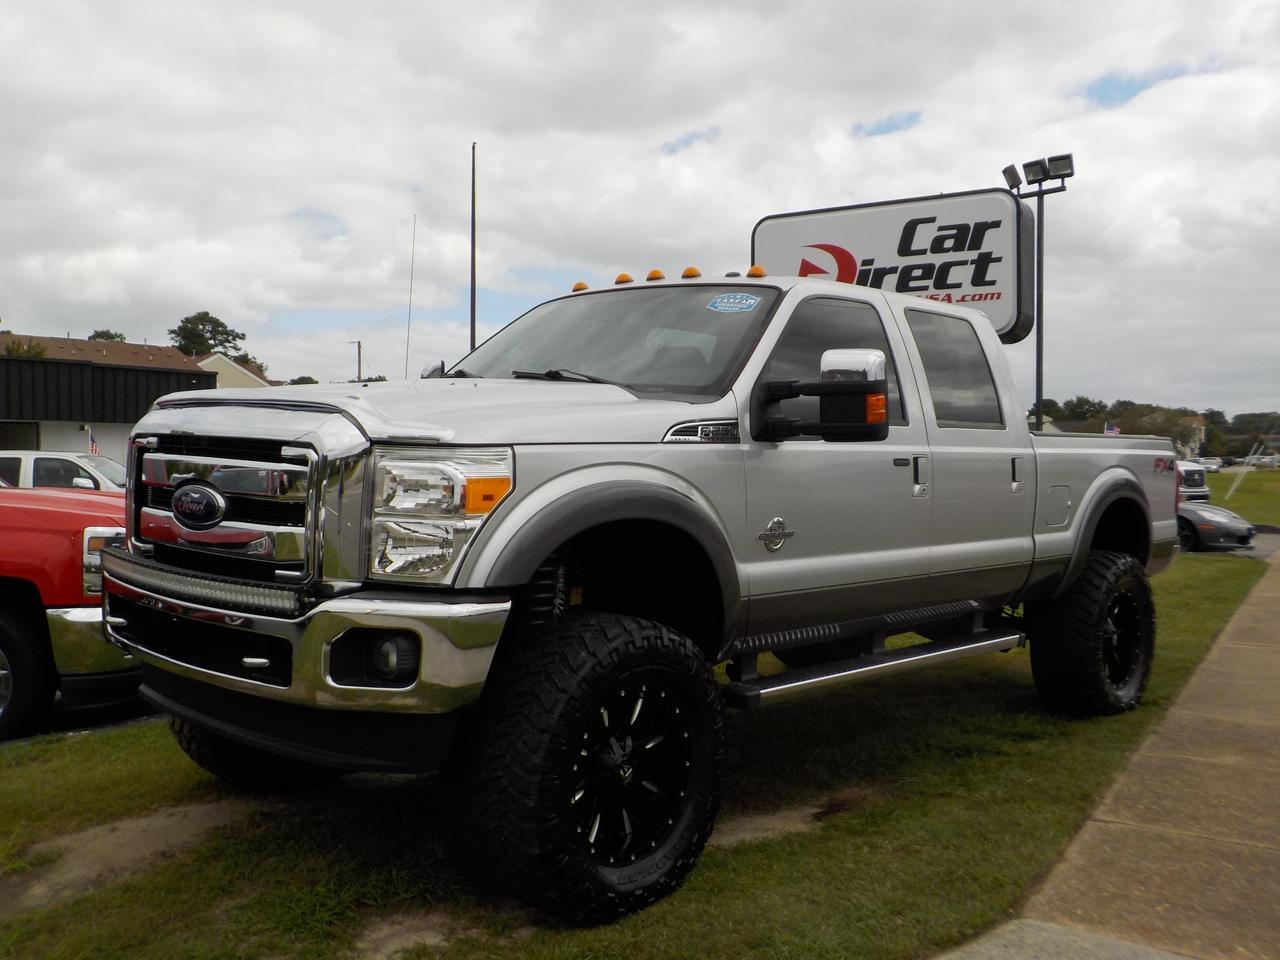 2014 FORD F-250 FX4 LARIAT CREW CAB 4X4, TURBO DIESEL, BACKUP CAM, LIFTED SUSPENSION, POWER SLIDING REAR WINDOW,NAV! Virginia Beach VA